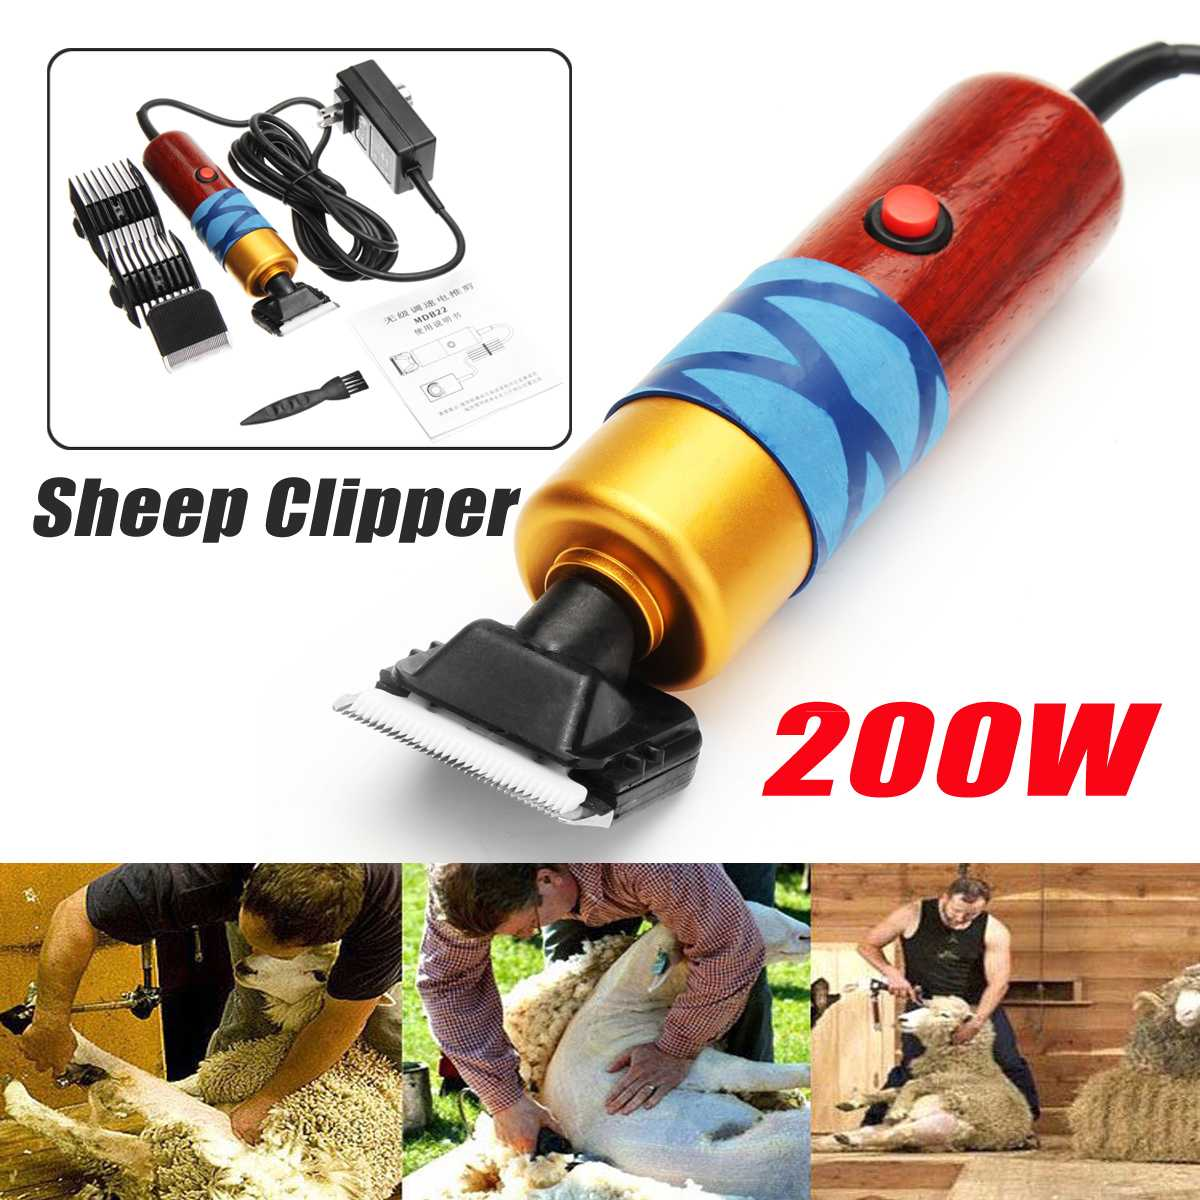 Tools : 200W Electric Sheep Clipper Professional Dog Grooming Kit For Rabbit Pet Dog Grooming Tools 100-240V